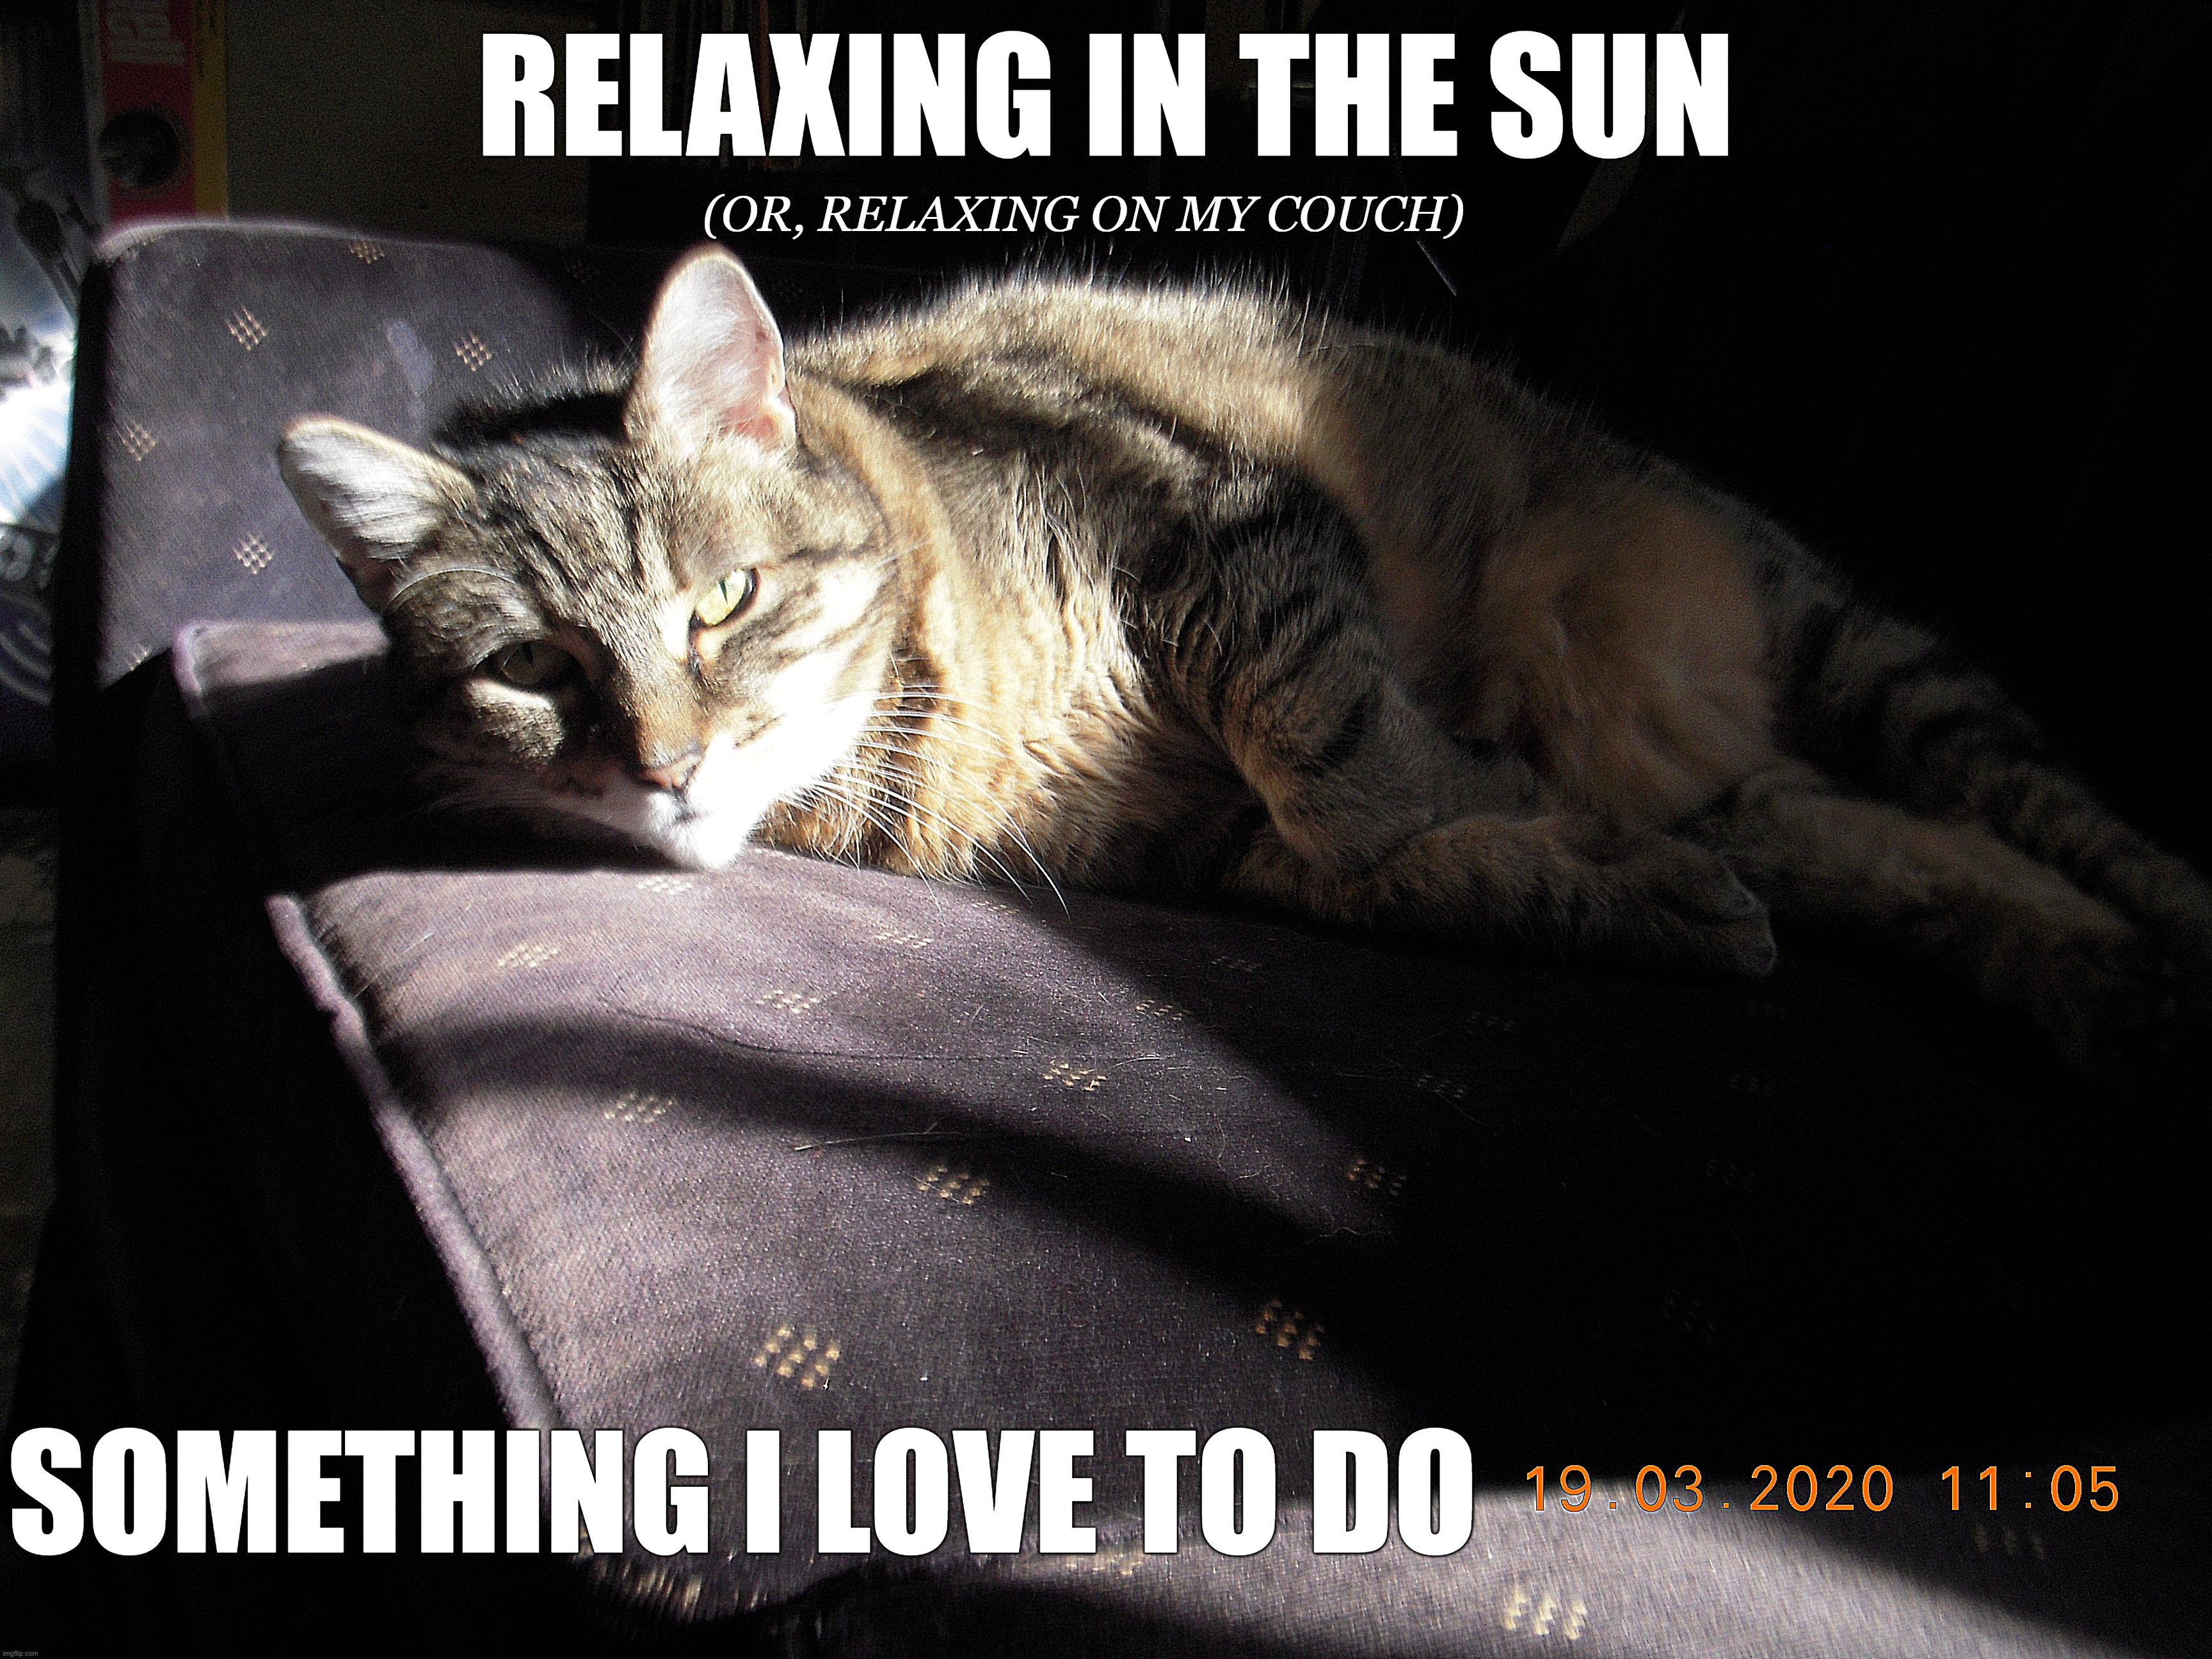 """Relaxing on the couch"" 